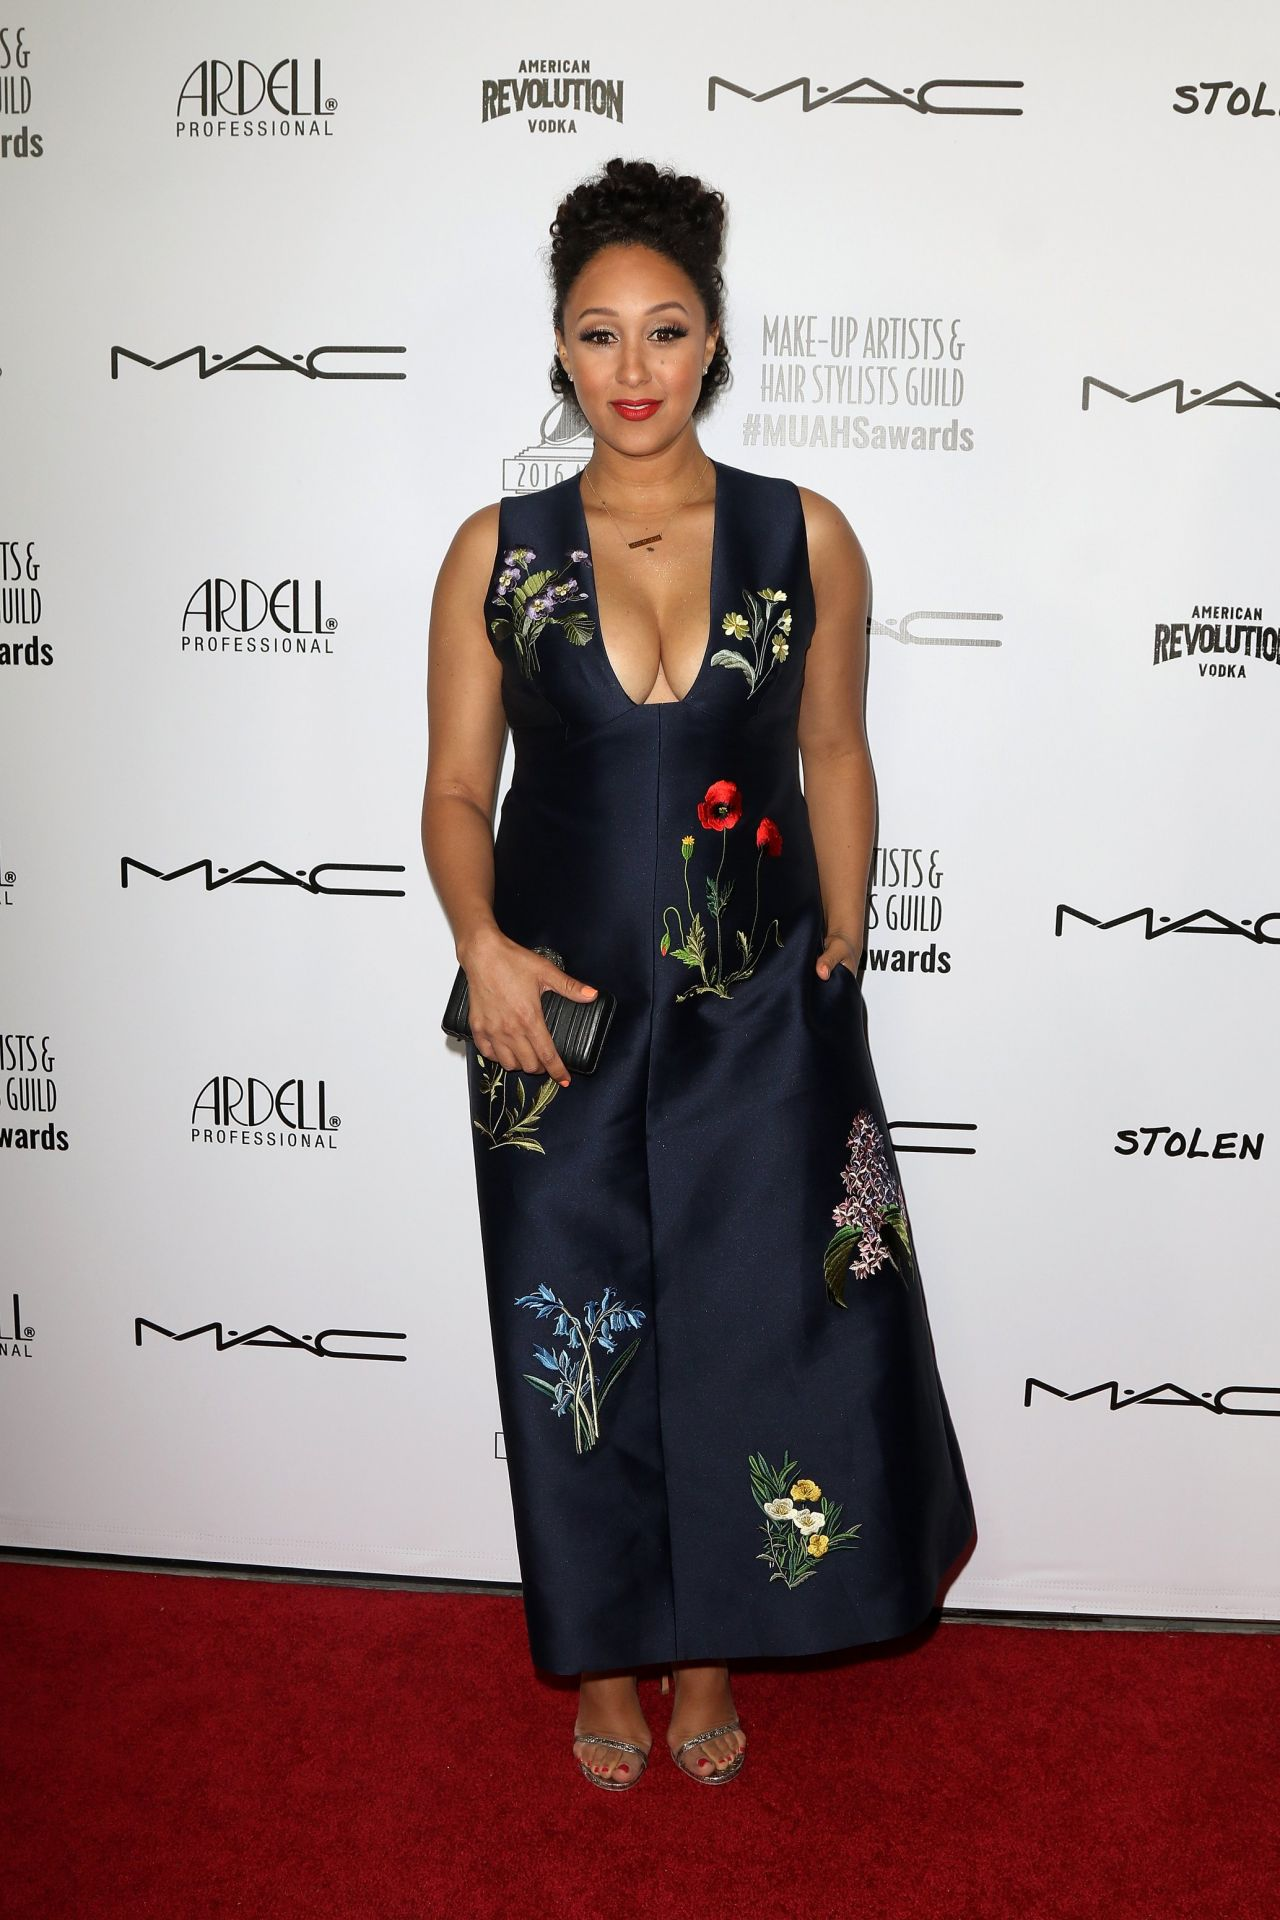 tamera-mowry-the-2016-make-up-artist-hair-stylist-guild-awards-in-los-angeles-6